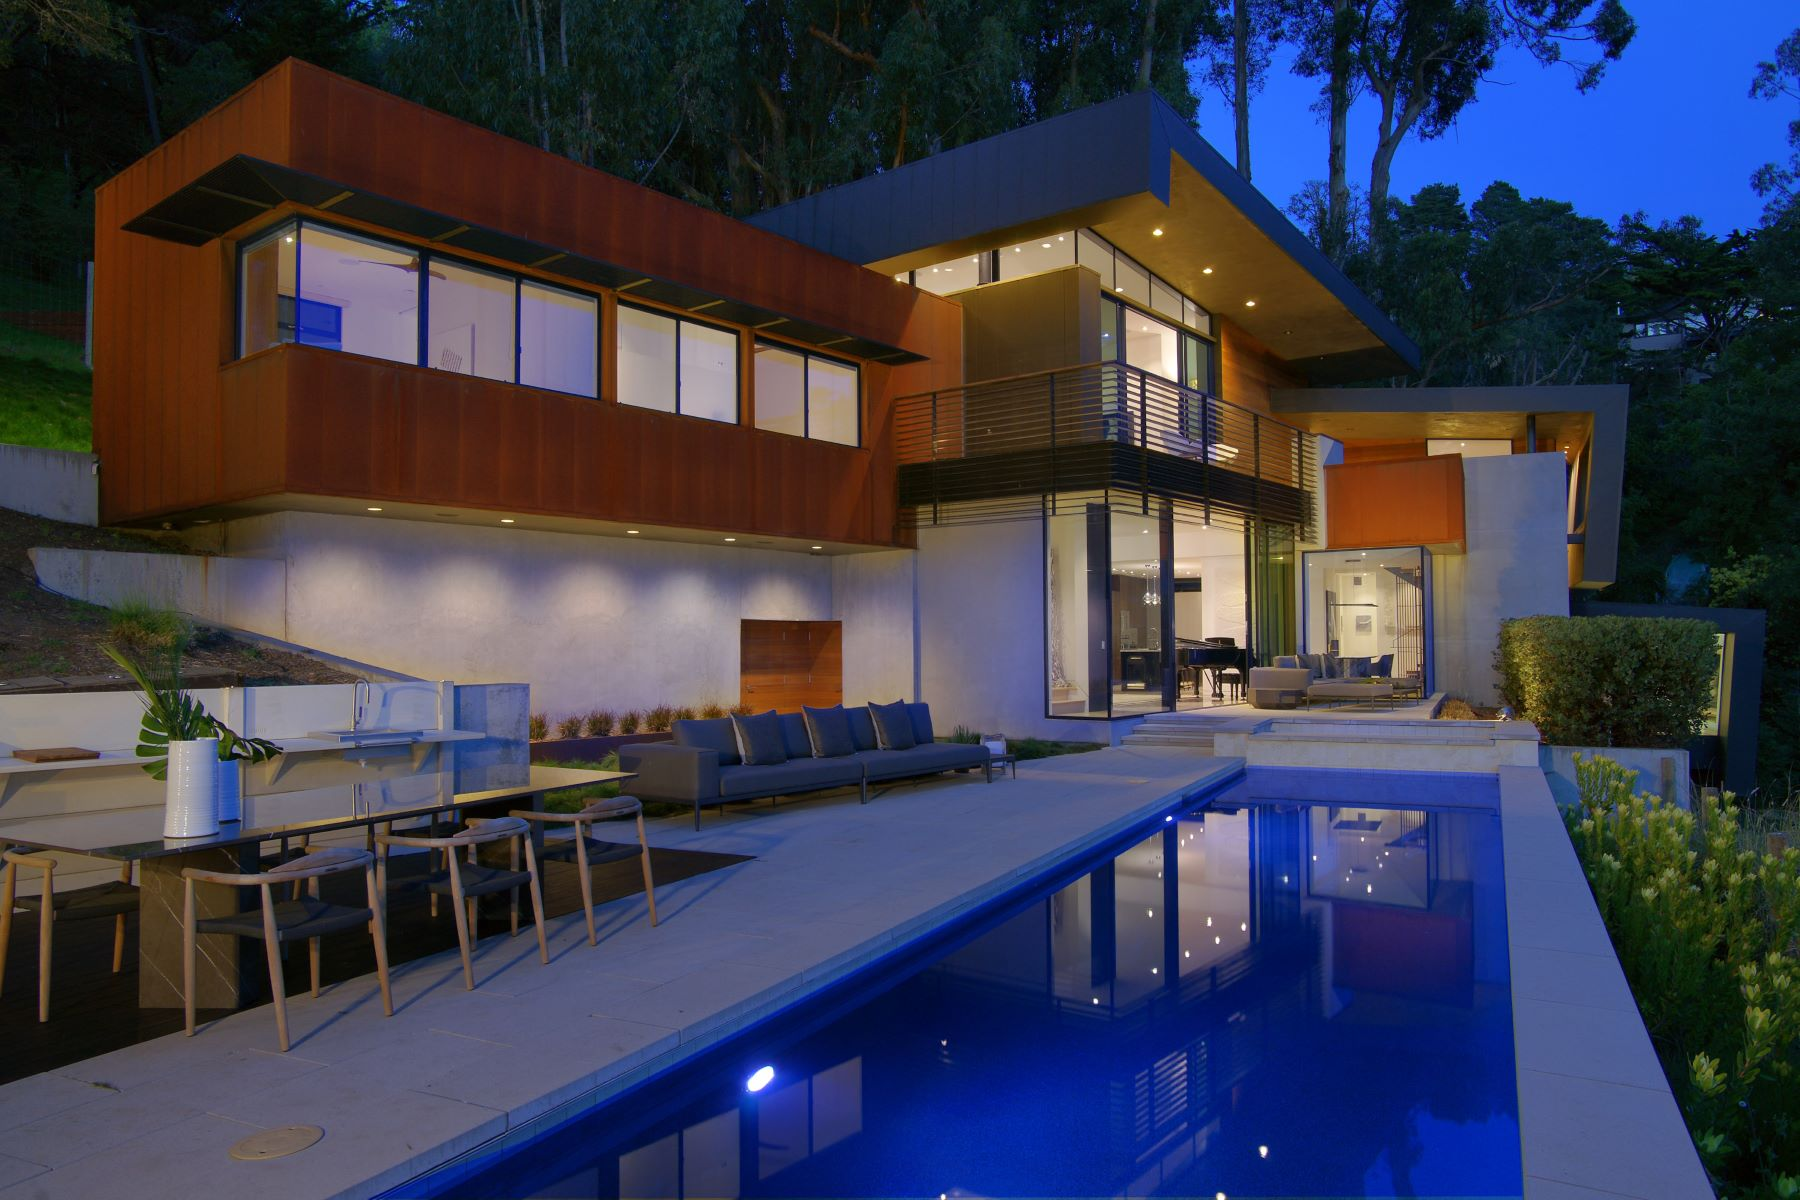 Single Family Homes pour l Vente à The Best of Mill Valley 432 Lovell Ave, Mill Valley, Californie 94941 États-Unis